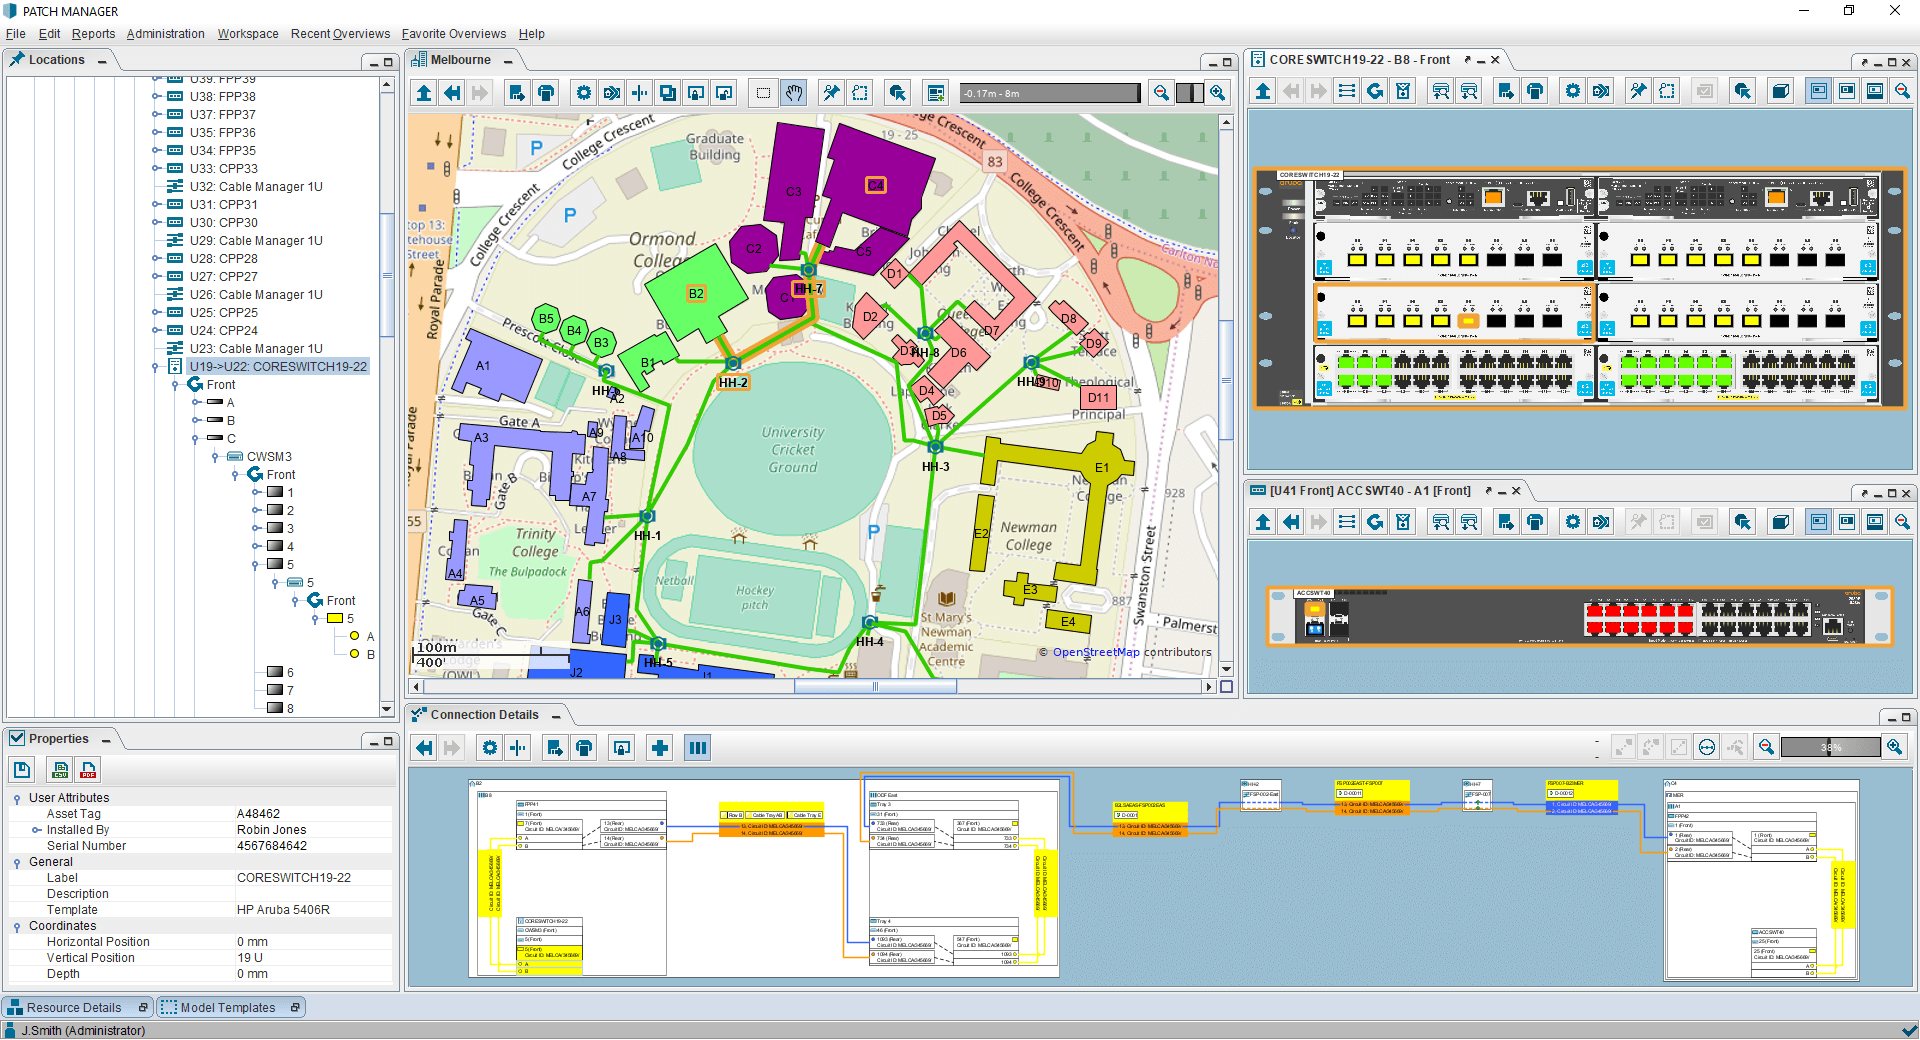 PATCH MANAGER campus overview